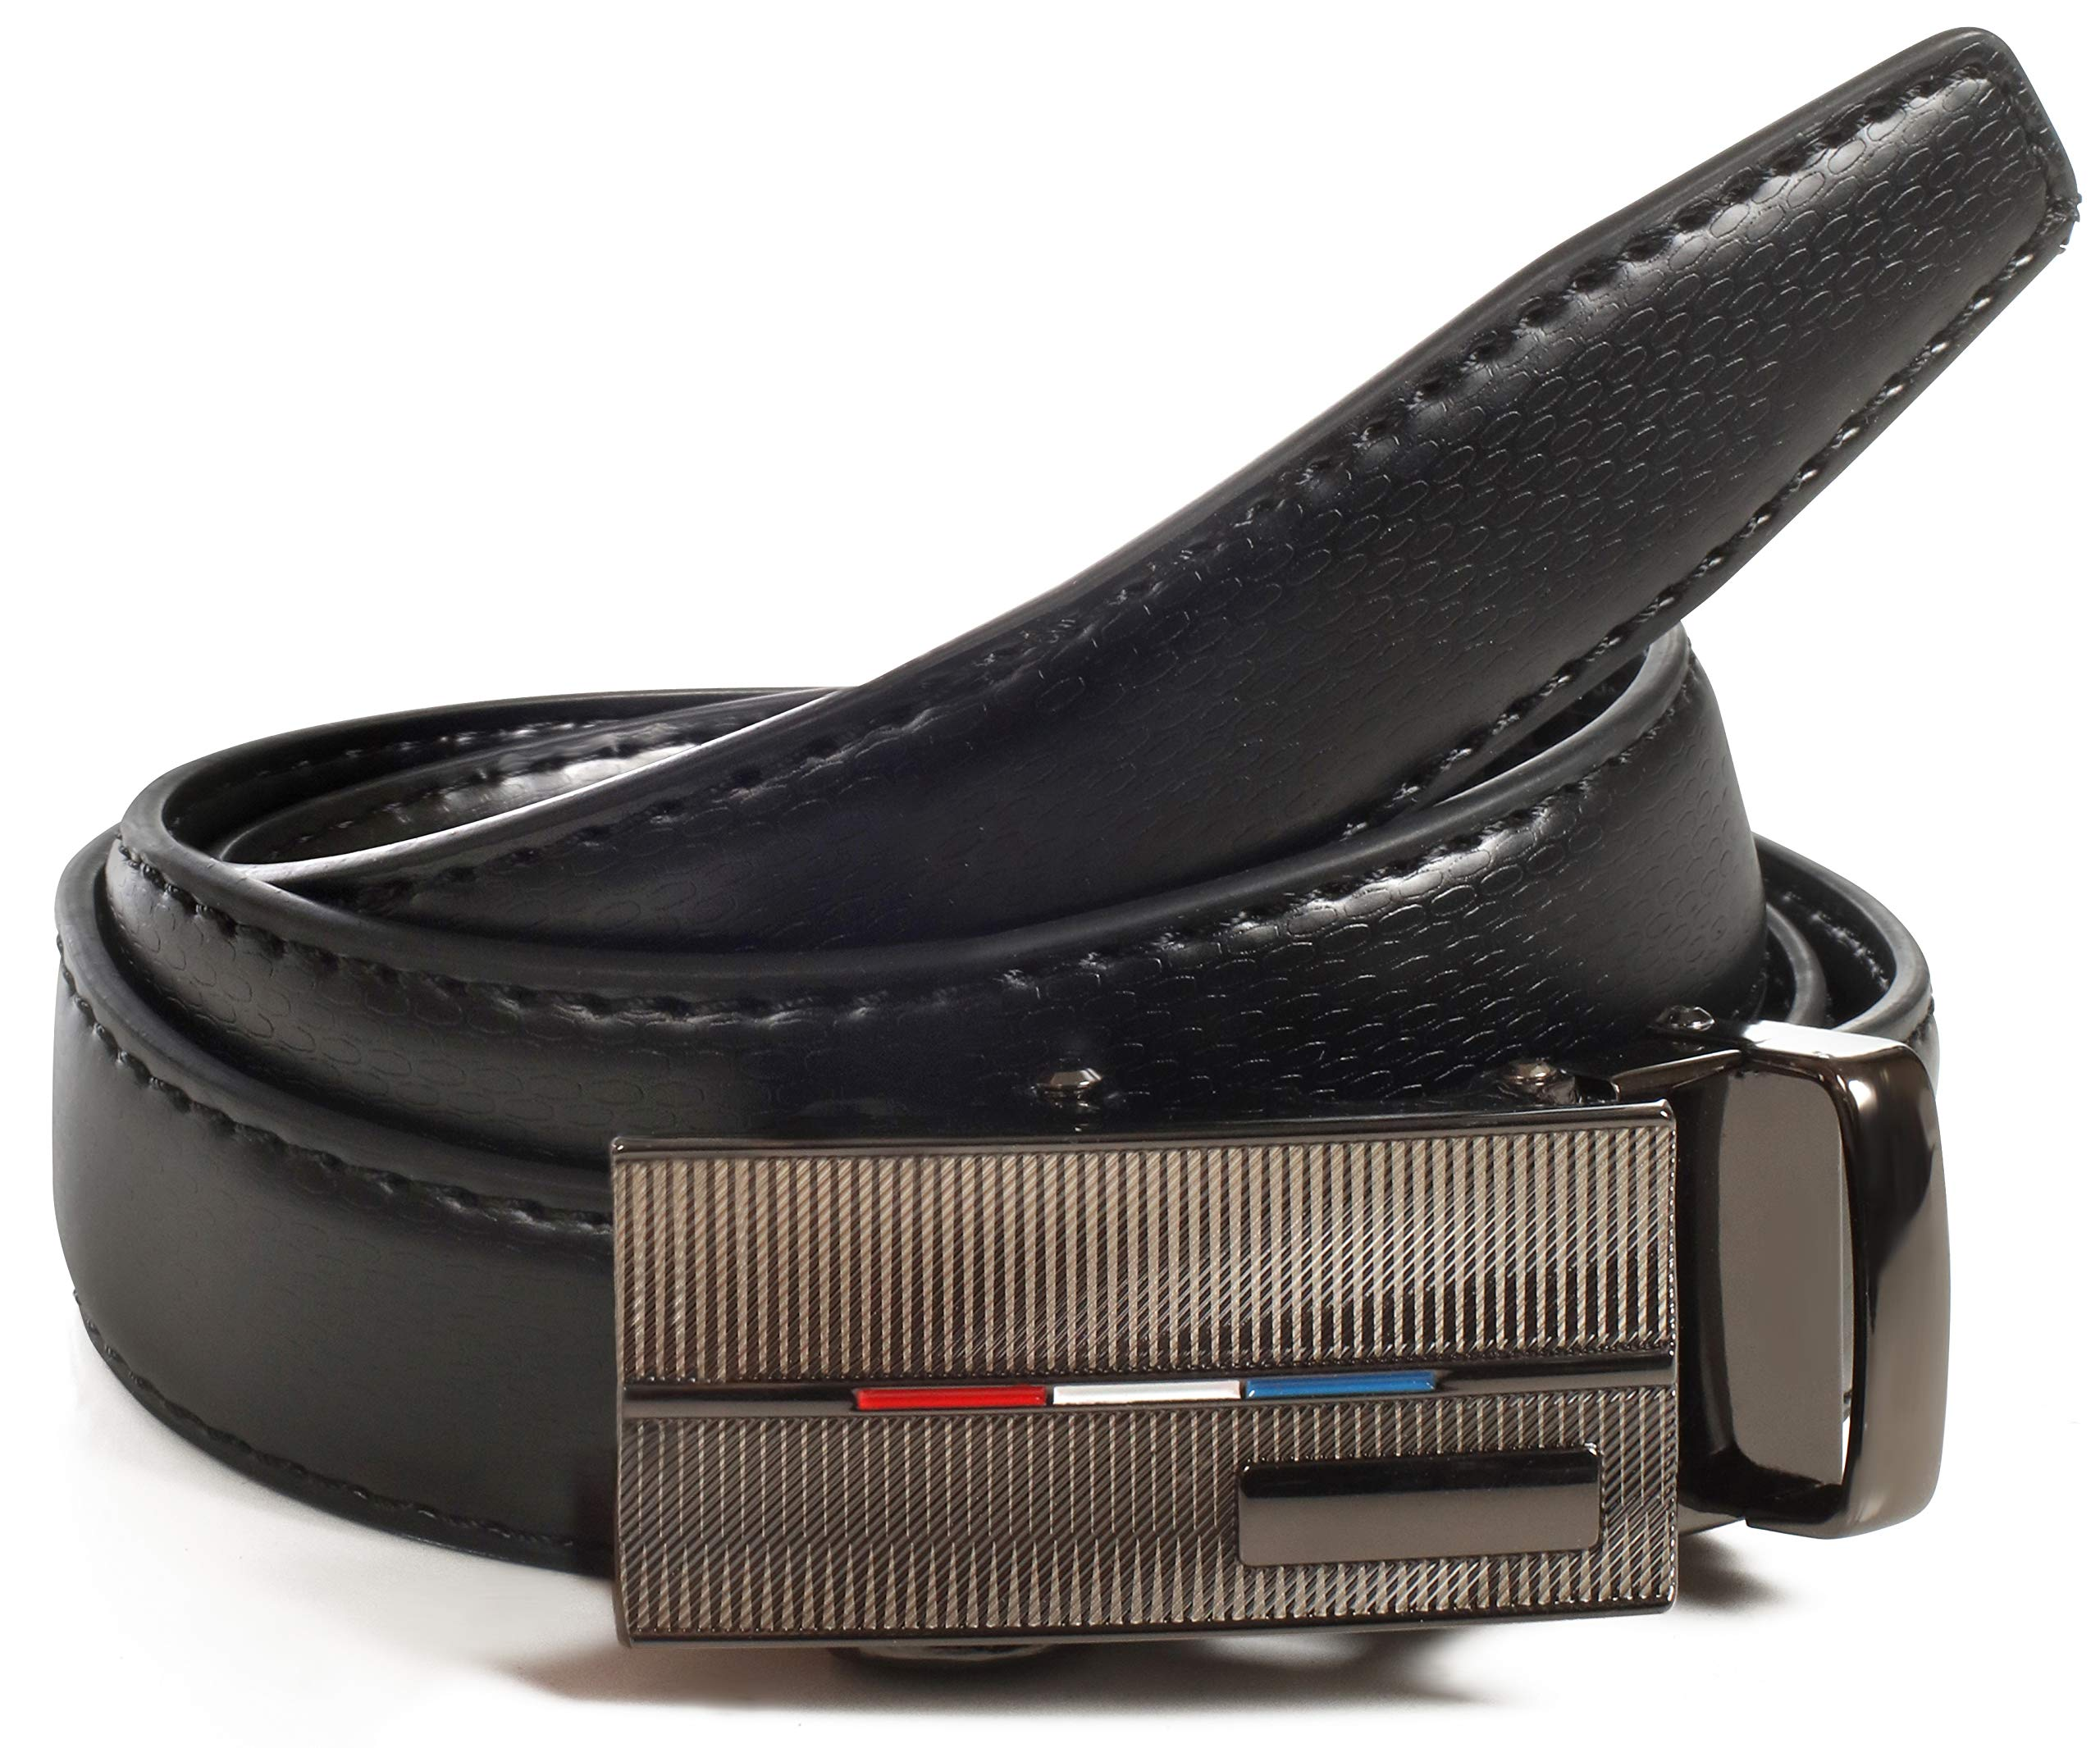 CANDOR AND CLASS Boy's Leather Ratchet Belt, Automatic Buckle, Adjustable Belt Without Holes, (Up to 32 Inch Waist, B724 Black) by CANDOR AND CLASS